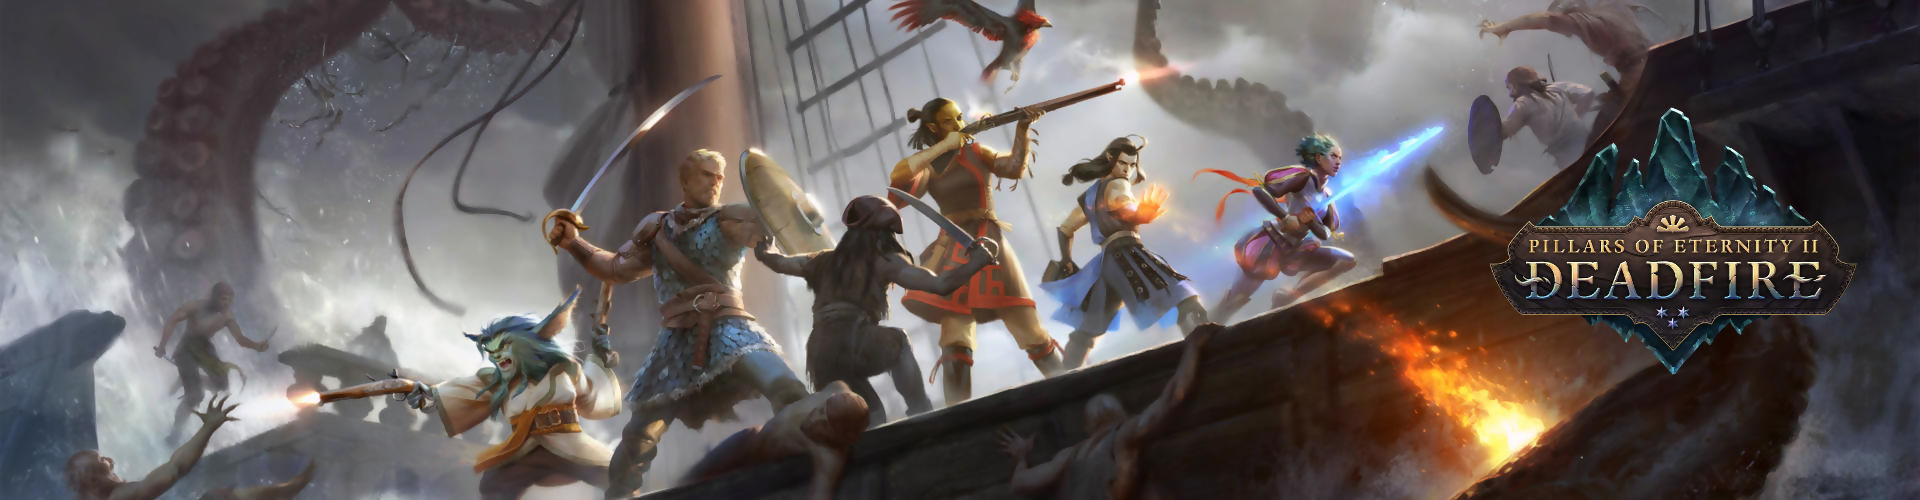 Check out all the reviews of Pillars of Eternity 2: Deadfire